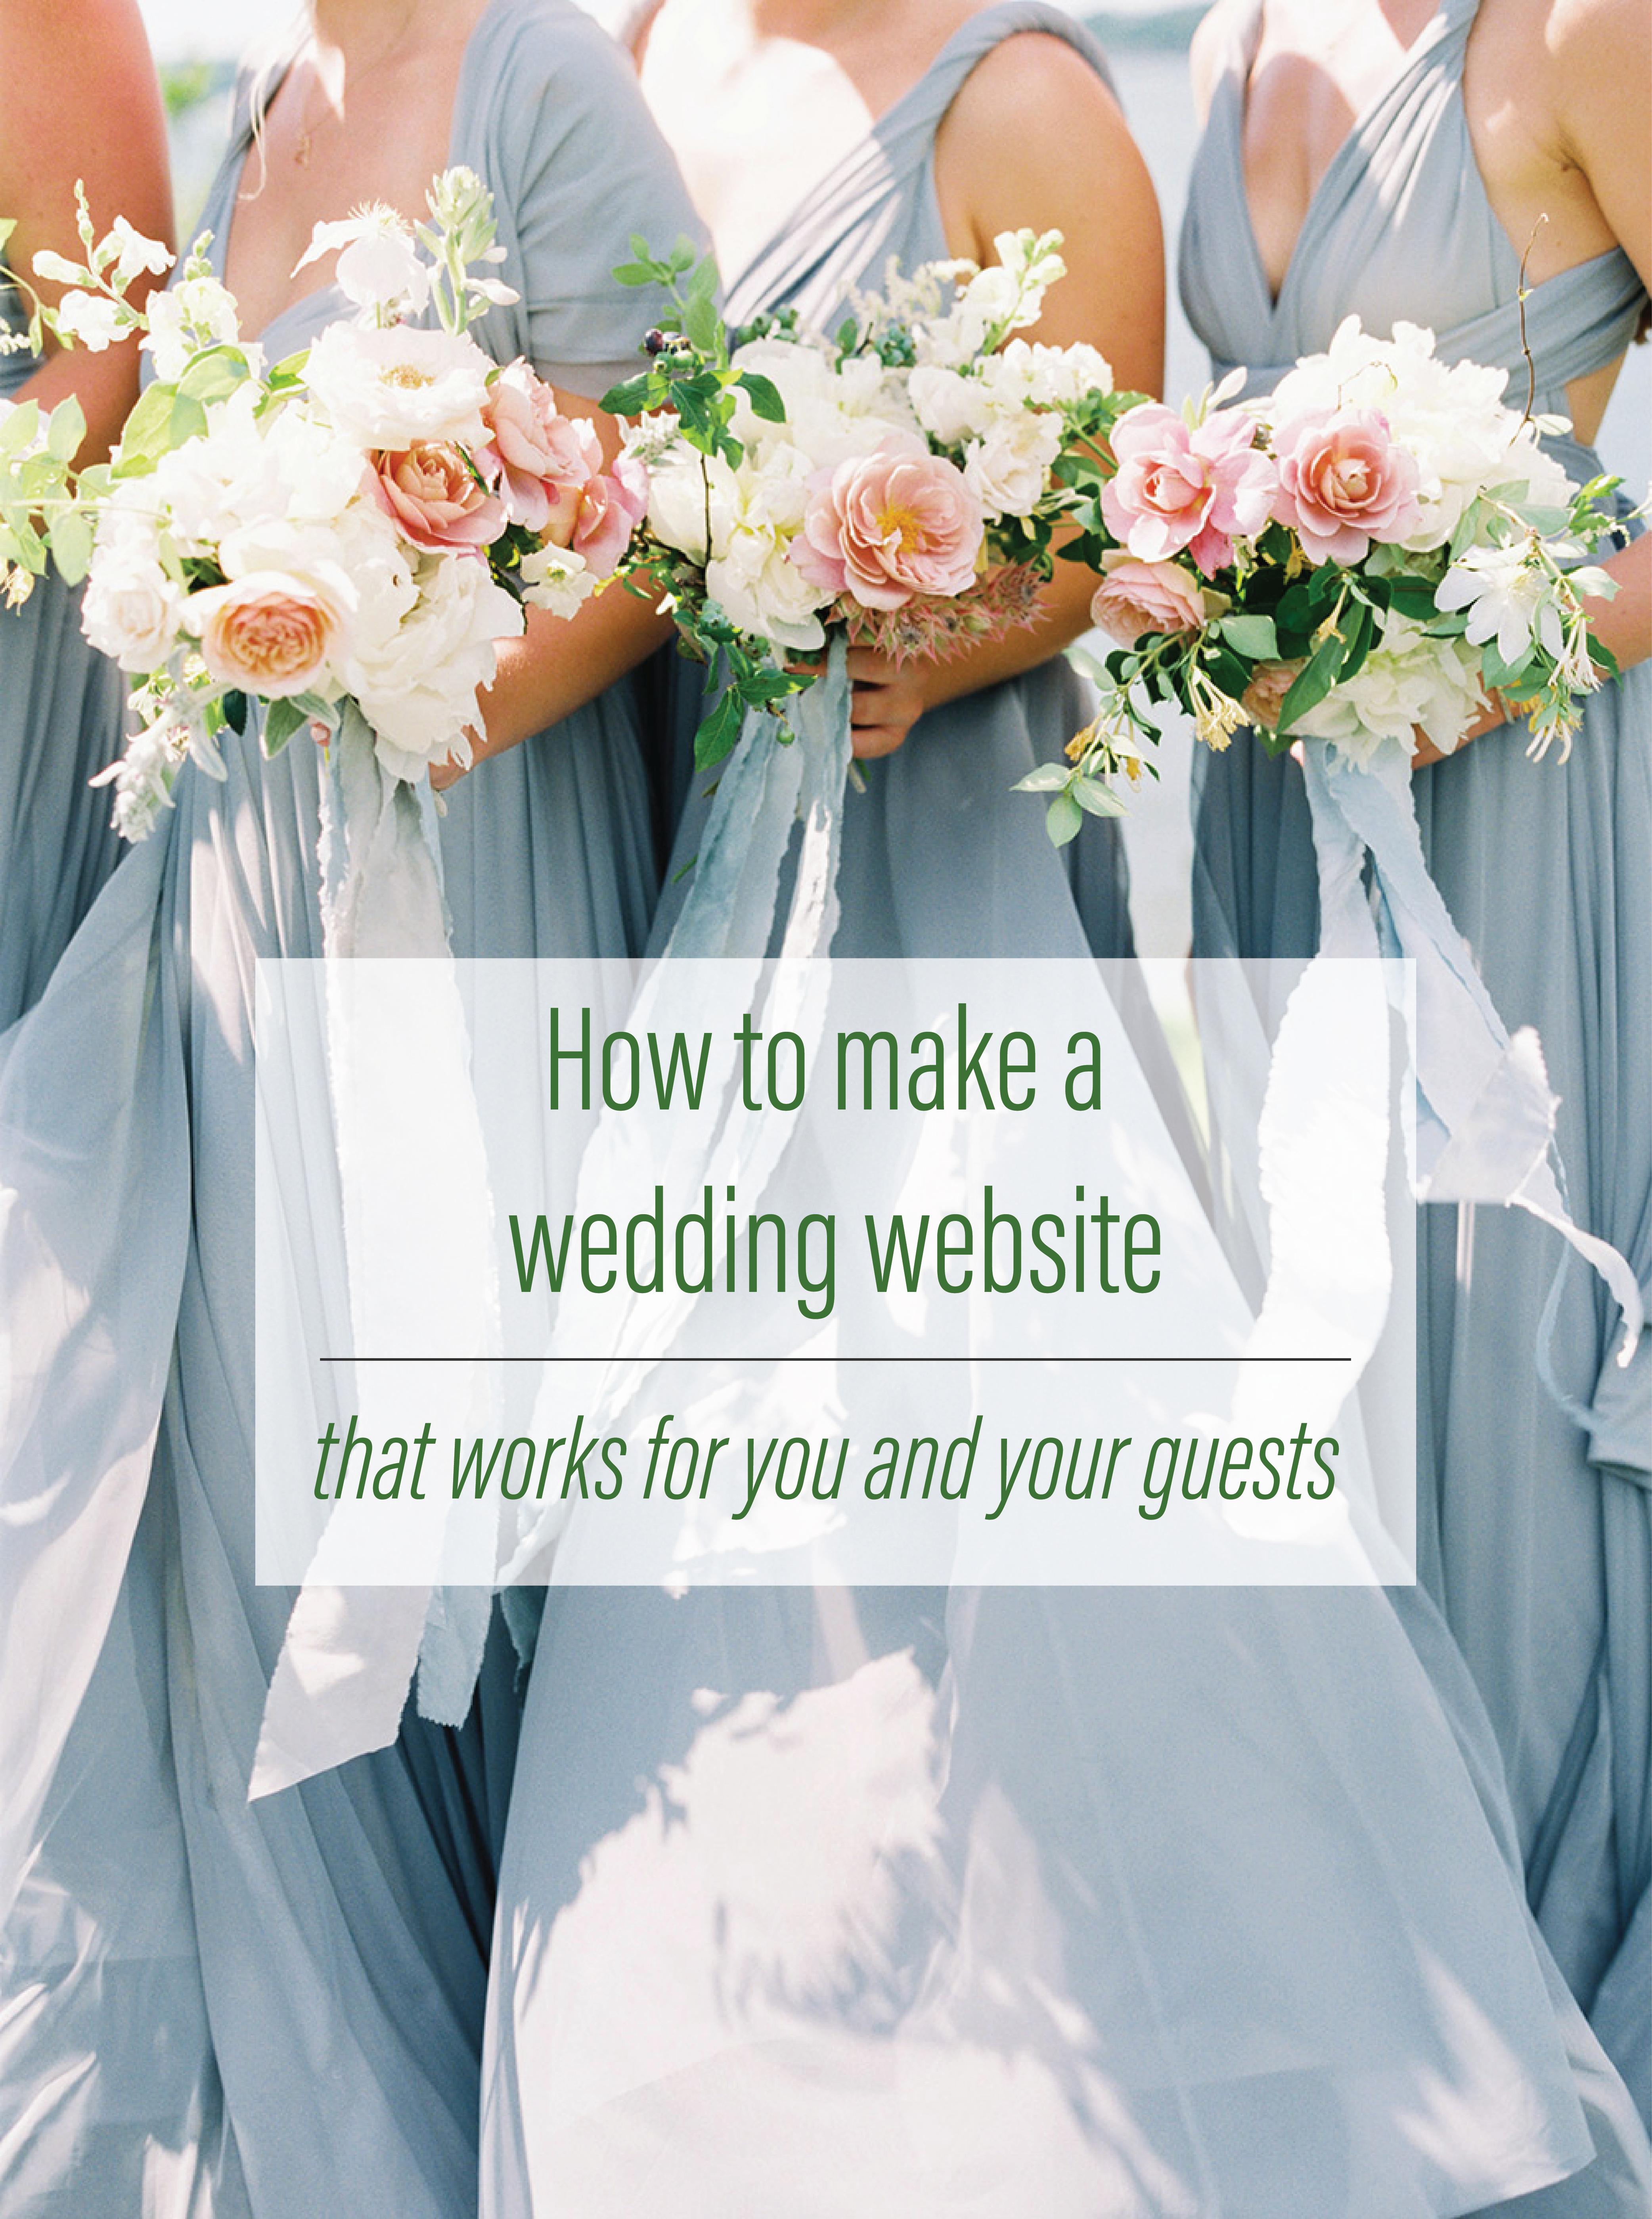 how to make a wedding website that works for you and your guests